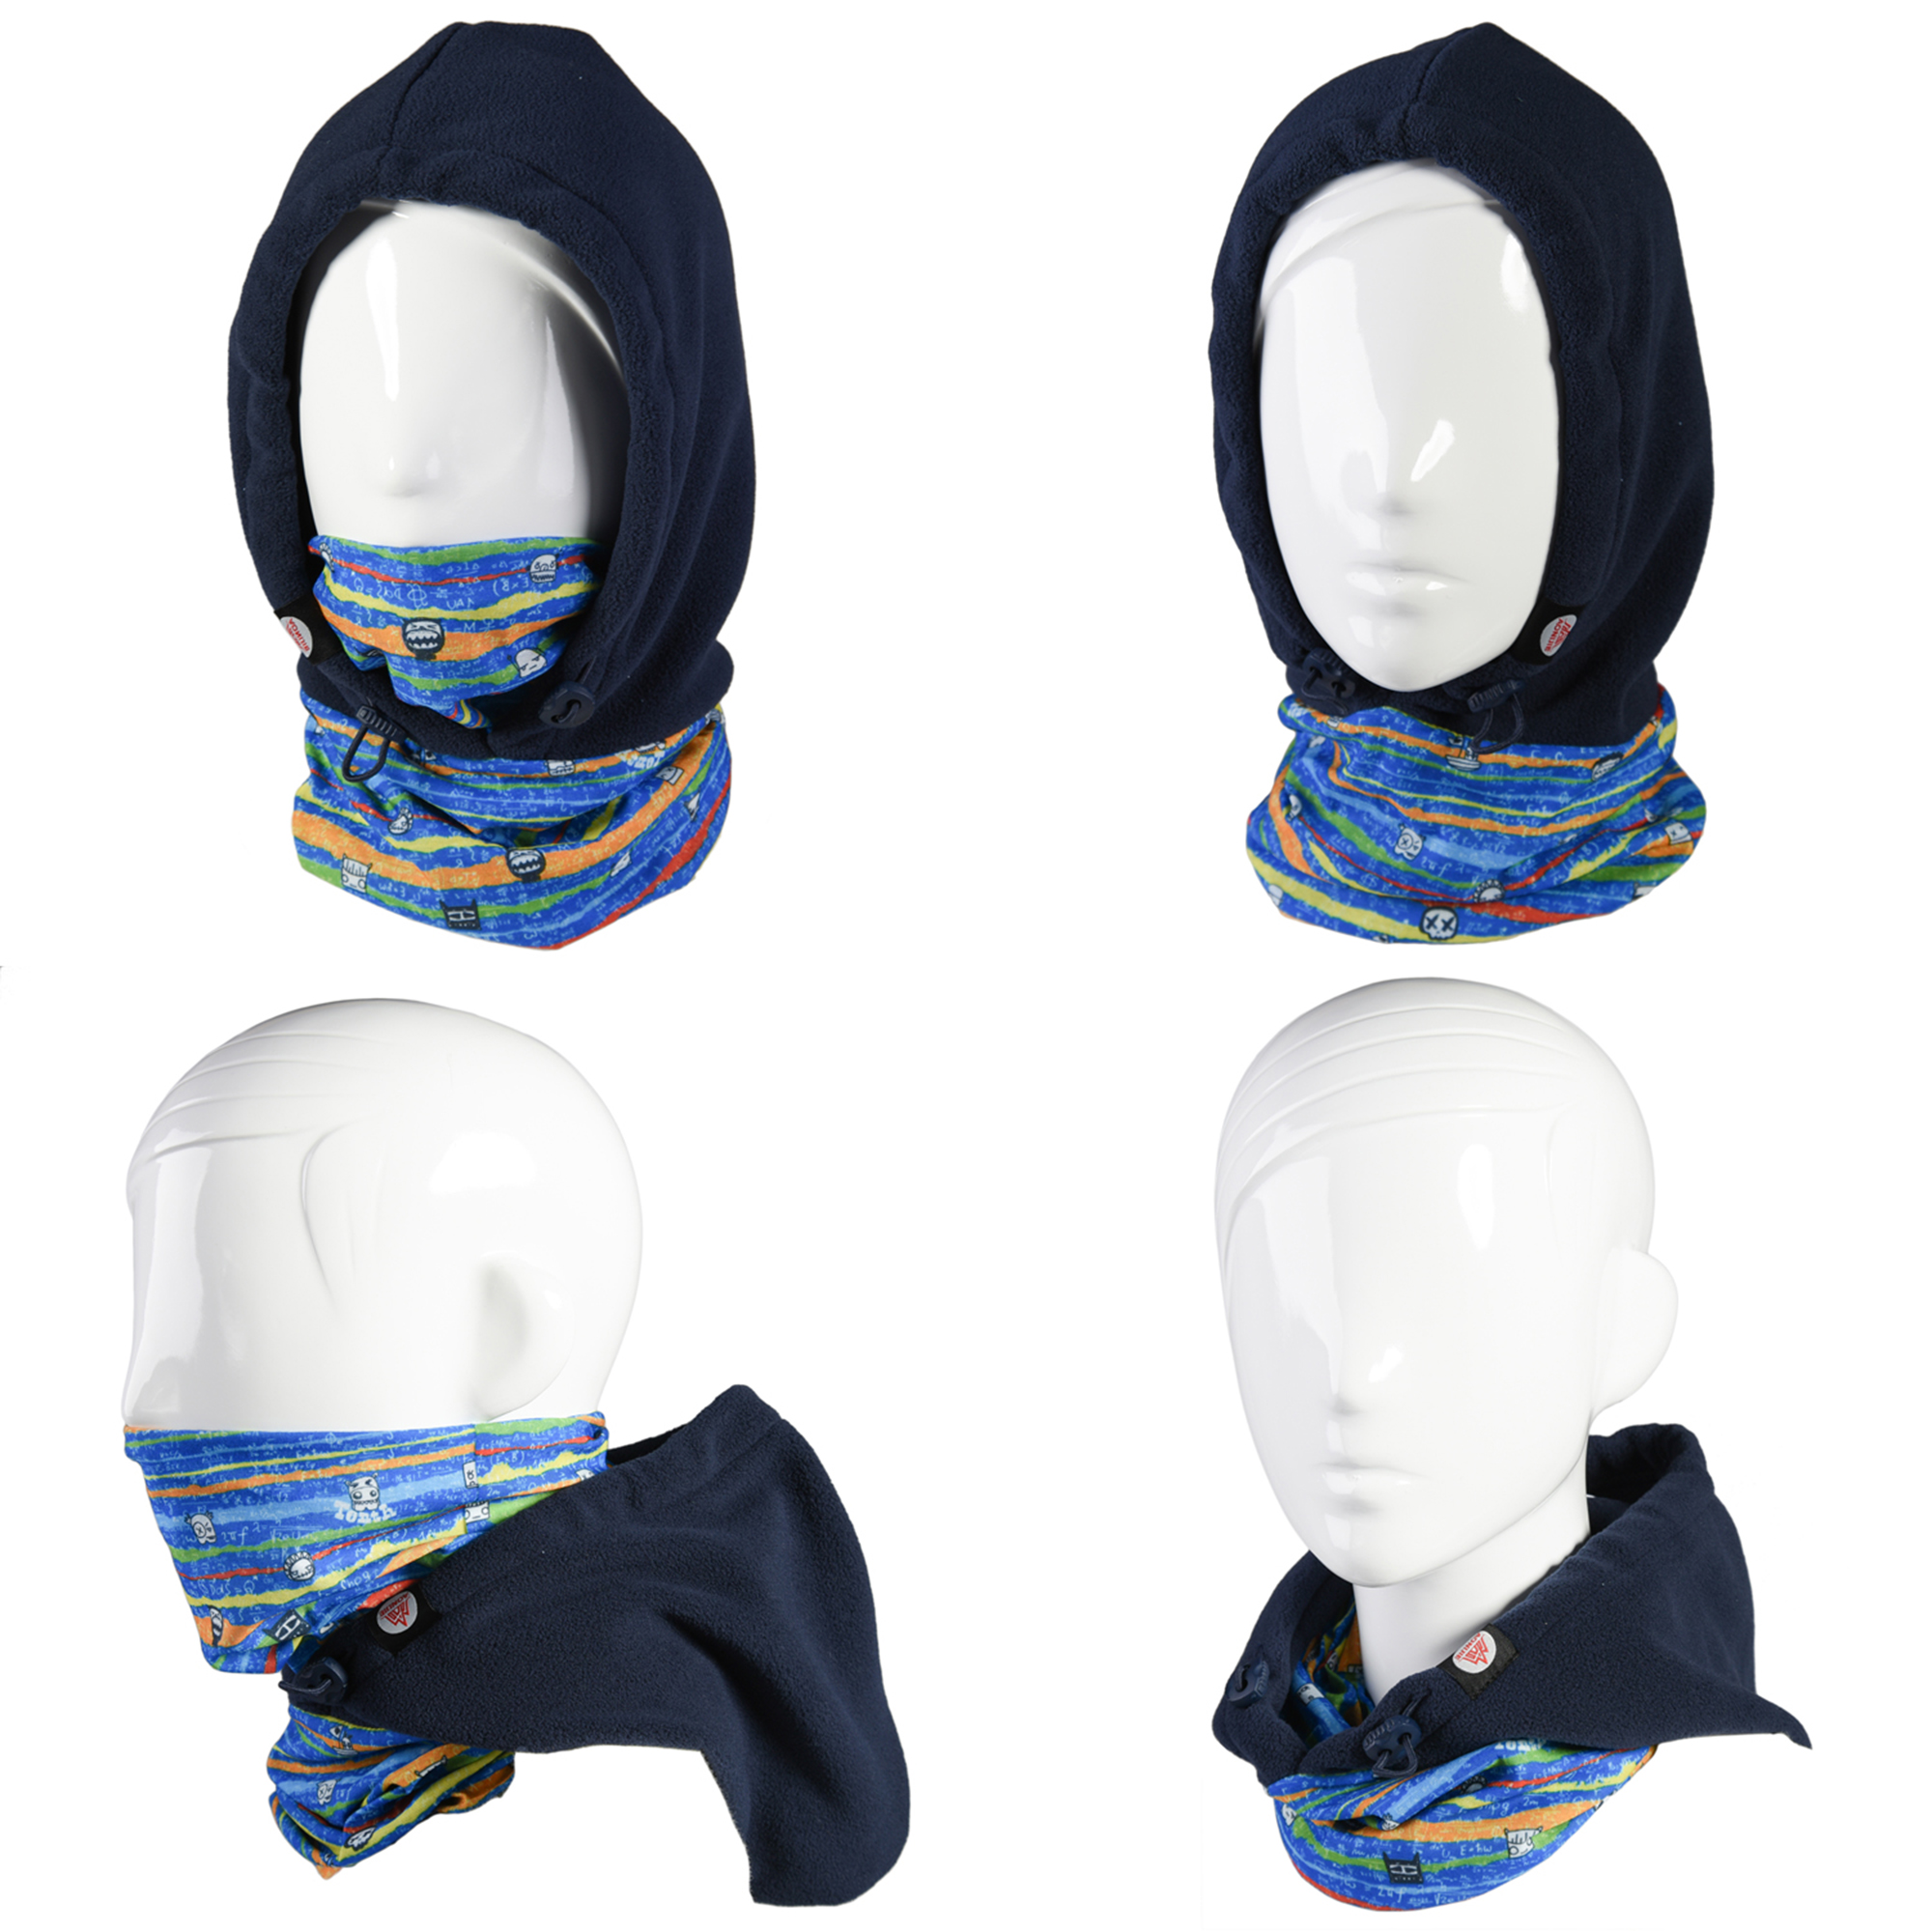 WEANAS Kids 4 in 1 Face Cover Hood Mask Balaclava Hat, Extra Thick Hood Veil Thermal Warm Wind Proof, Neck Warmers Face Mask and Fleece Hat (Blue)